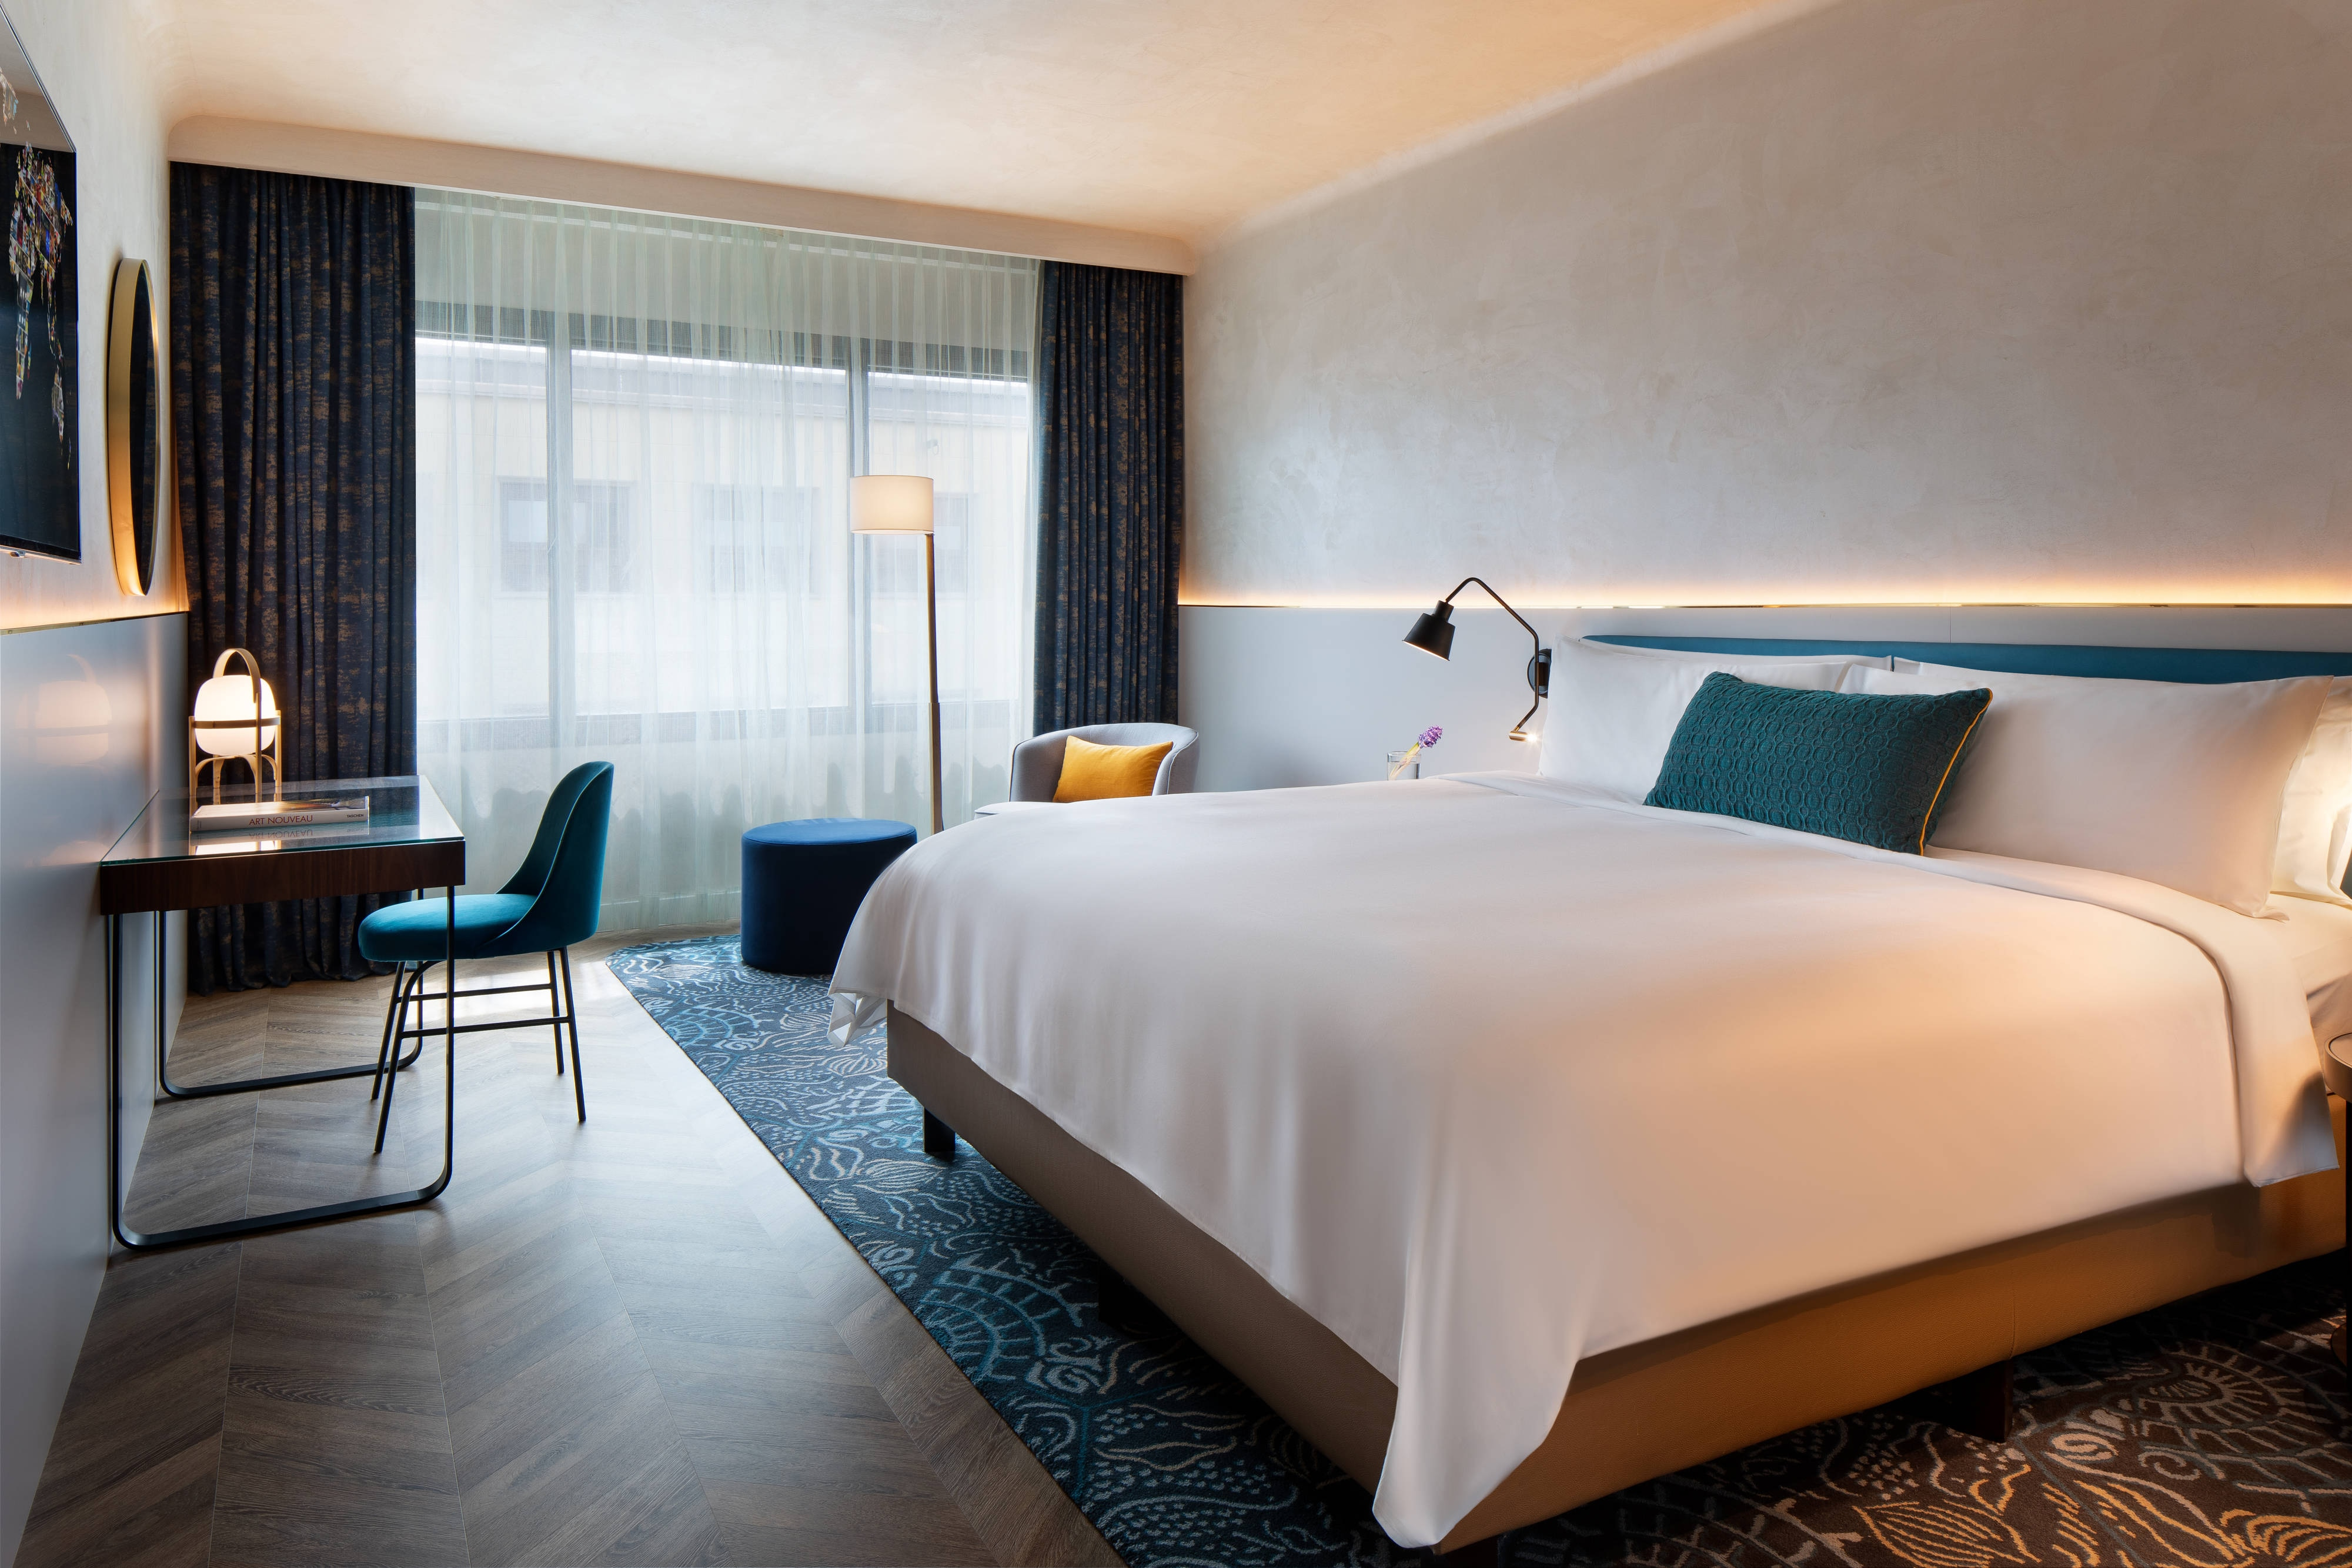 King Eixample Prestige Guest Room